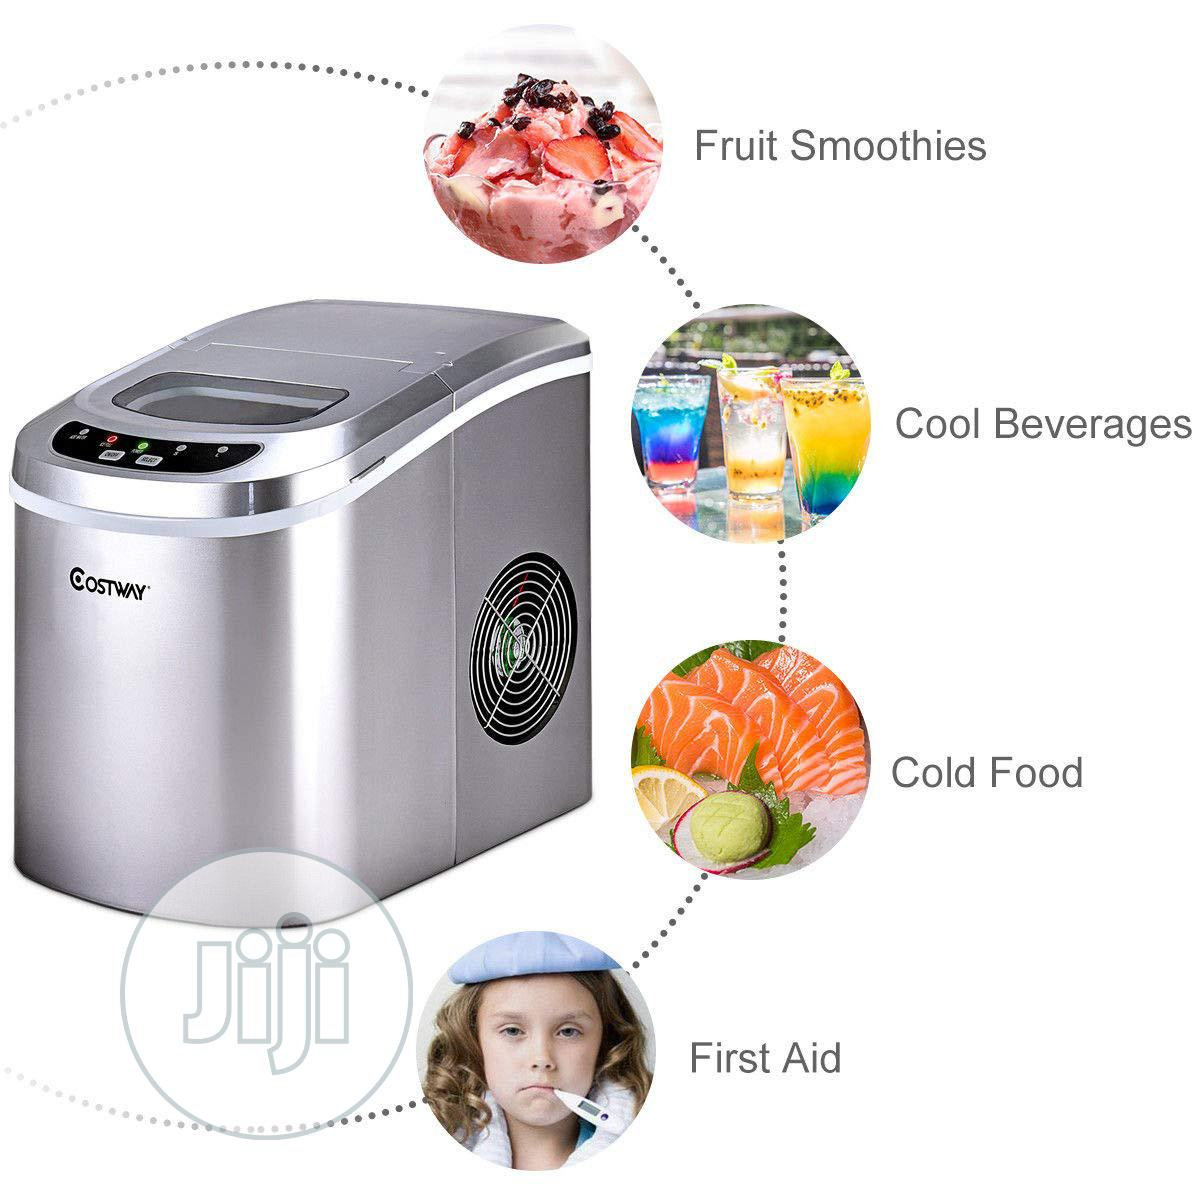 COSTWAY Ice Maker for Countertop Compact Ice Maker Machine